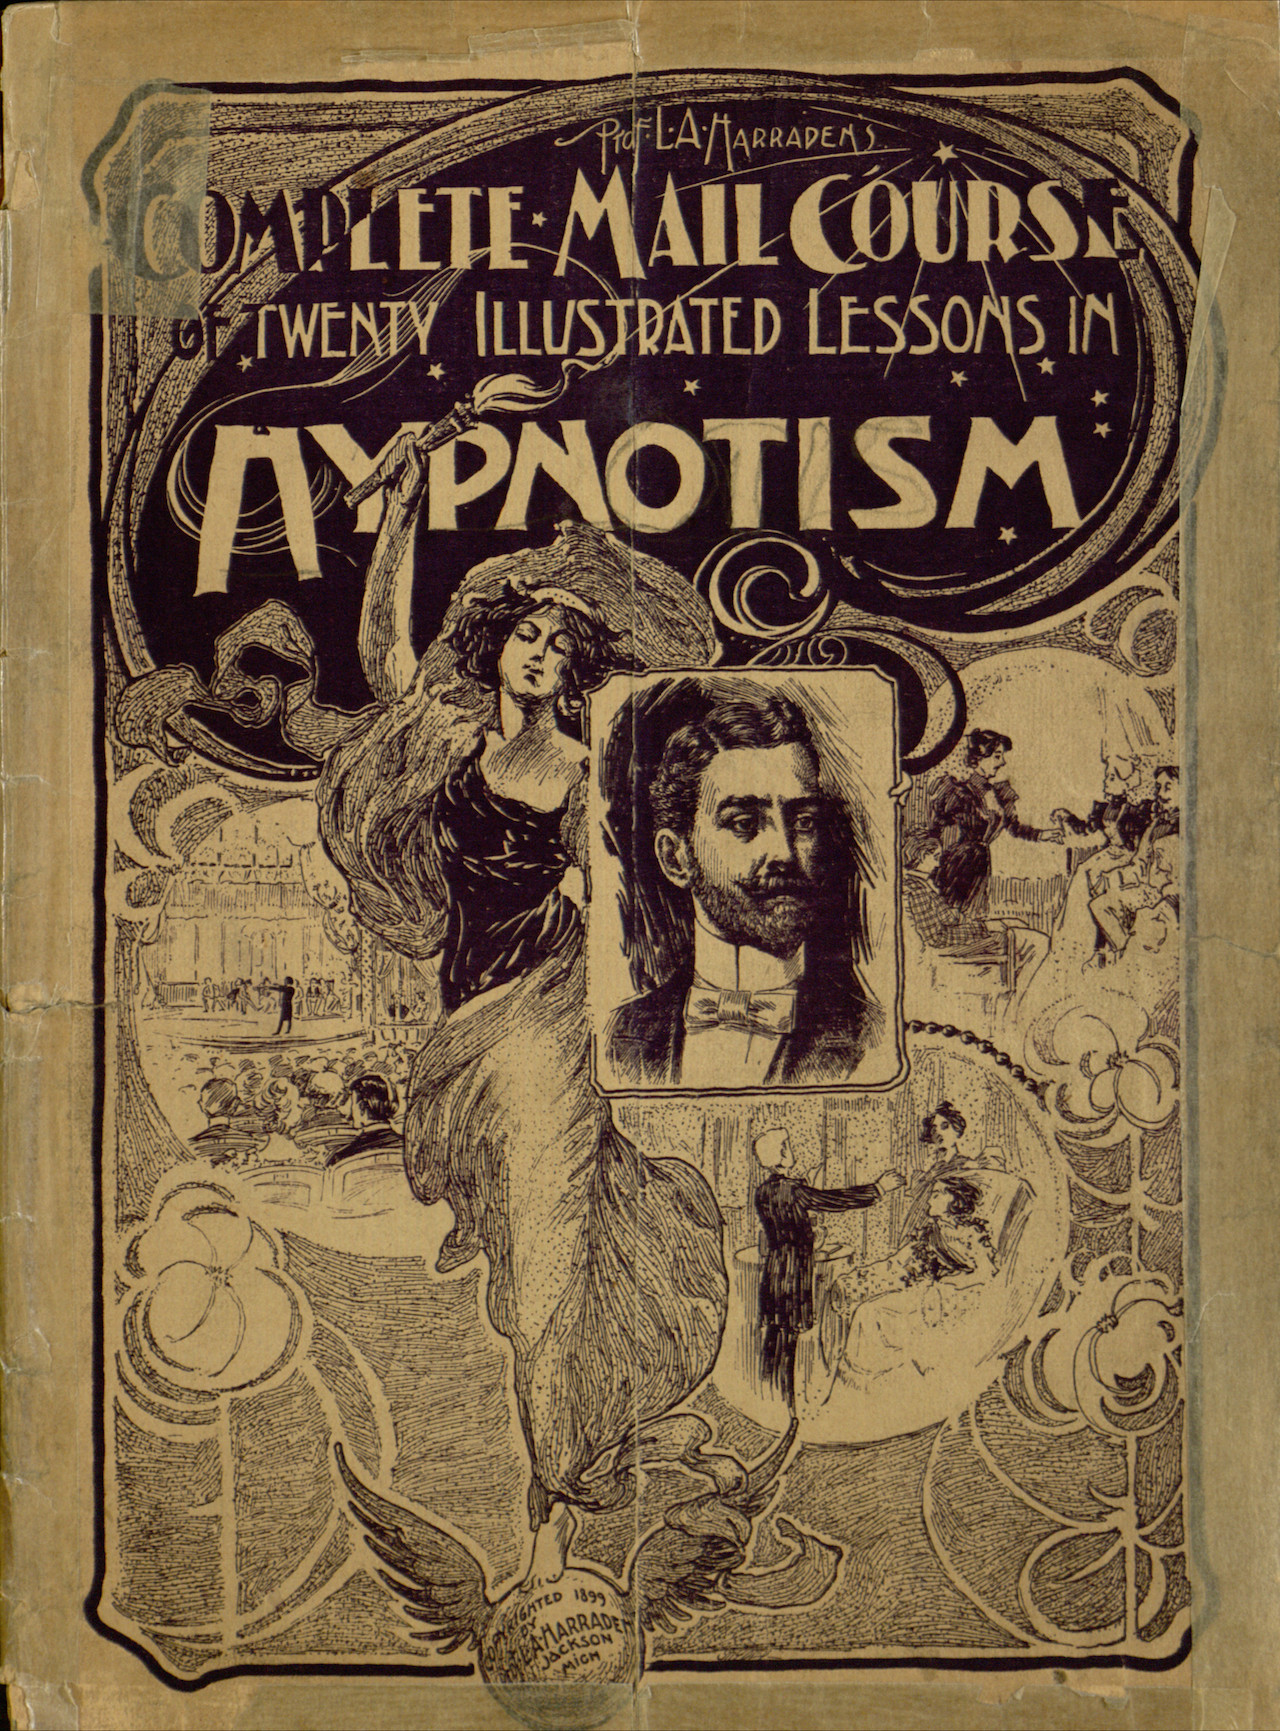 'Complete Mail Course of Twenty Illustrated Lessons in Hypnotism' (c. 1900) by Prof. L. A. Harraden (Image via , licensed under the Attribution-ShareAlike 3.0 Unported, CC BY-SA 3.0)